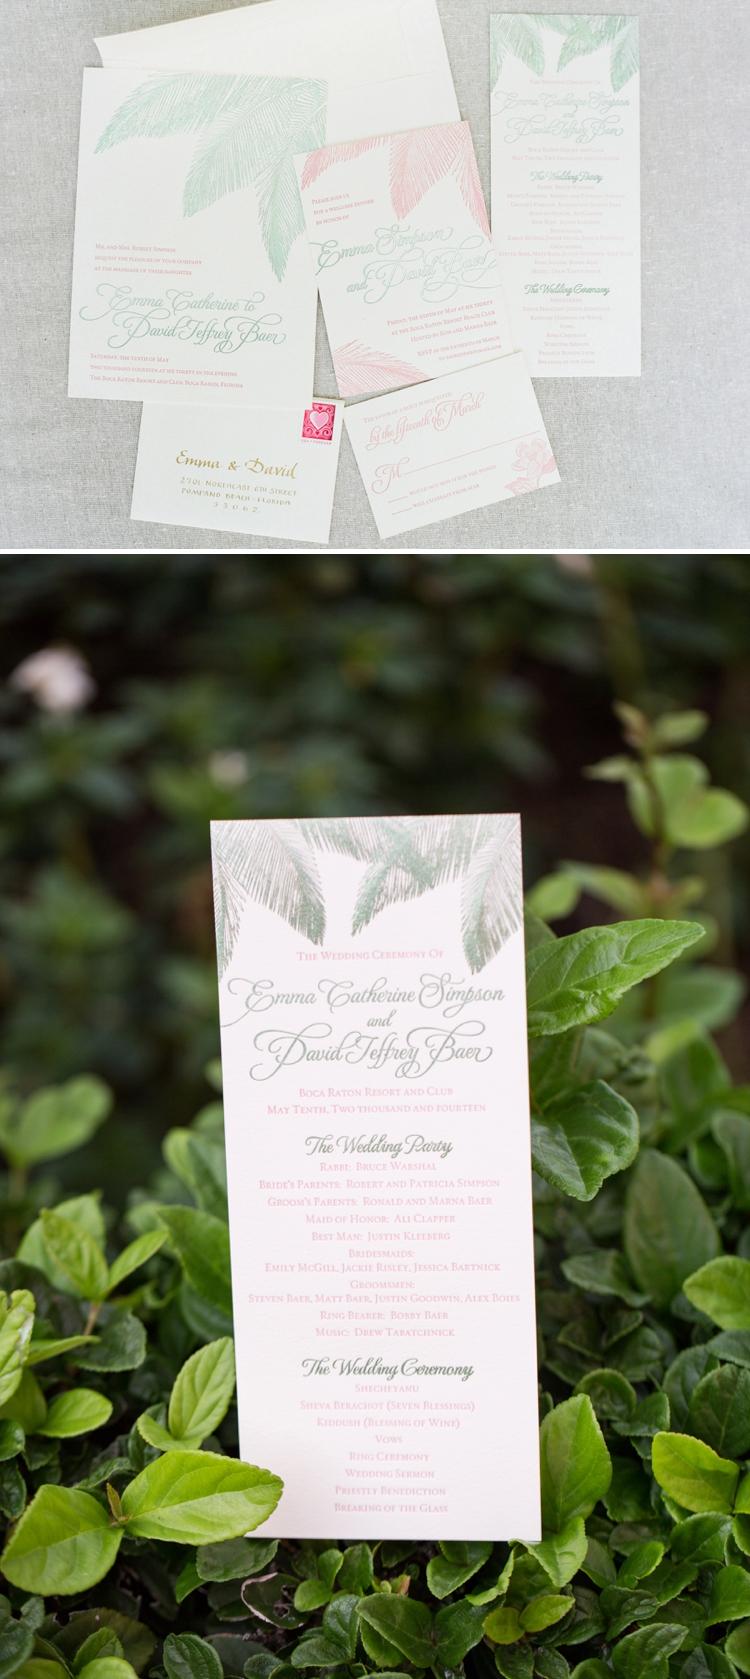 Elegant garden Jewish wedding